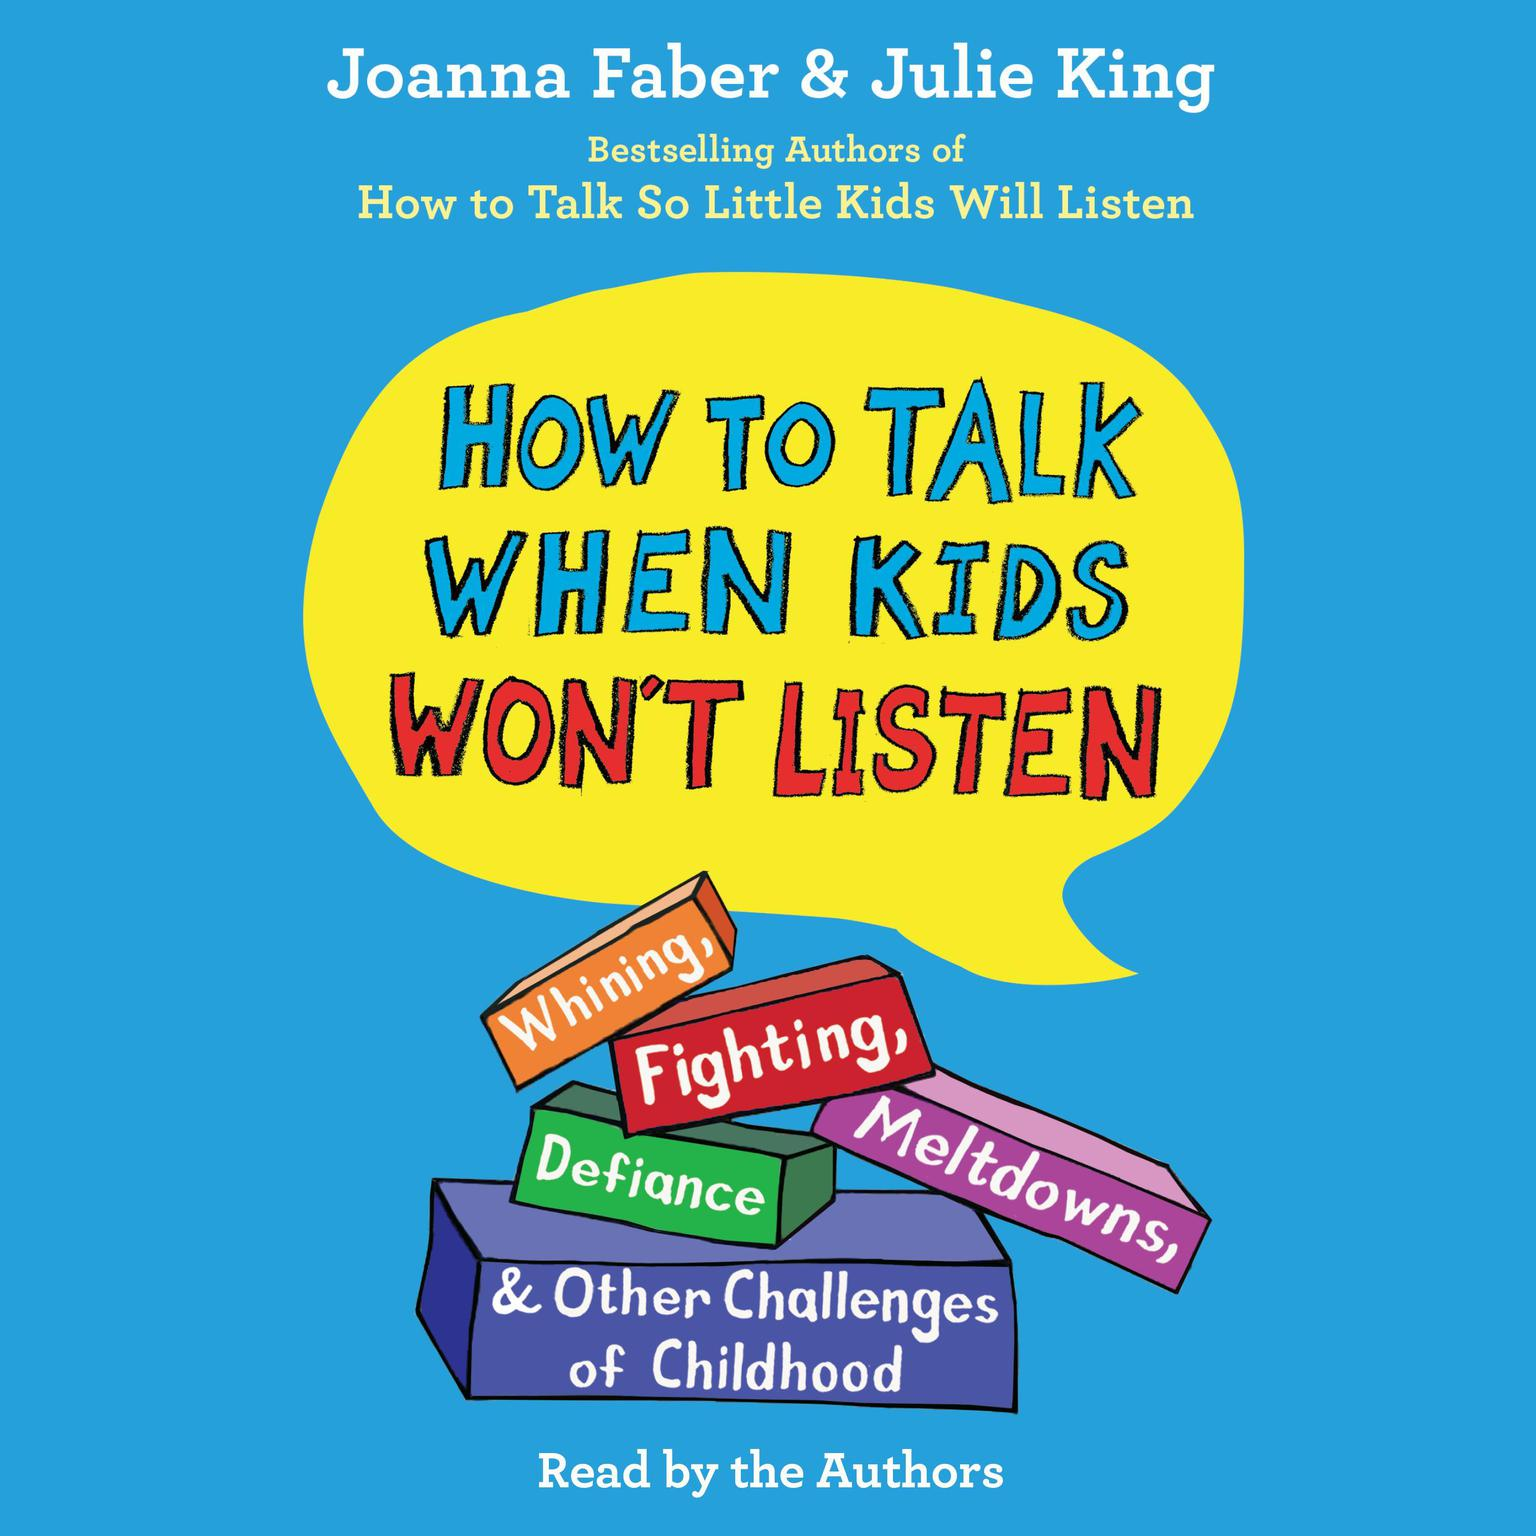 How To Talk When Kids Wont Listen: Whining, Fighting, Meltdowns, Defiance, and Other Challenges of Childhood Audiobook, by Joanna Faber